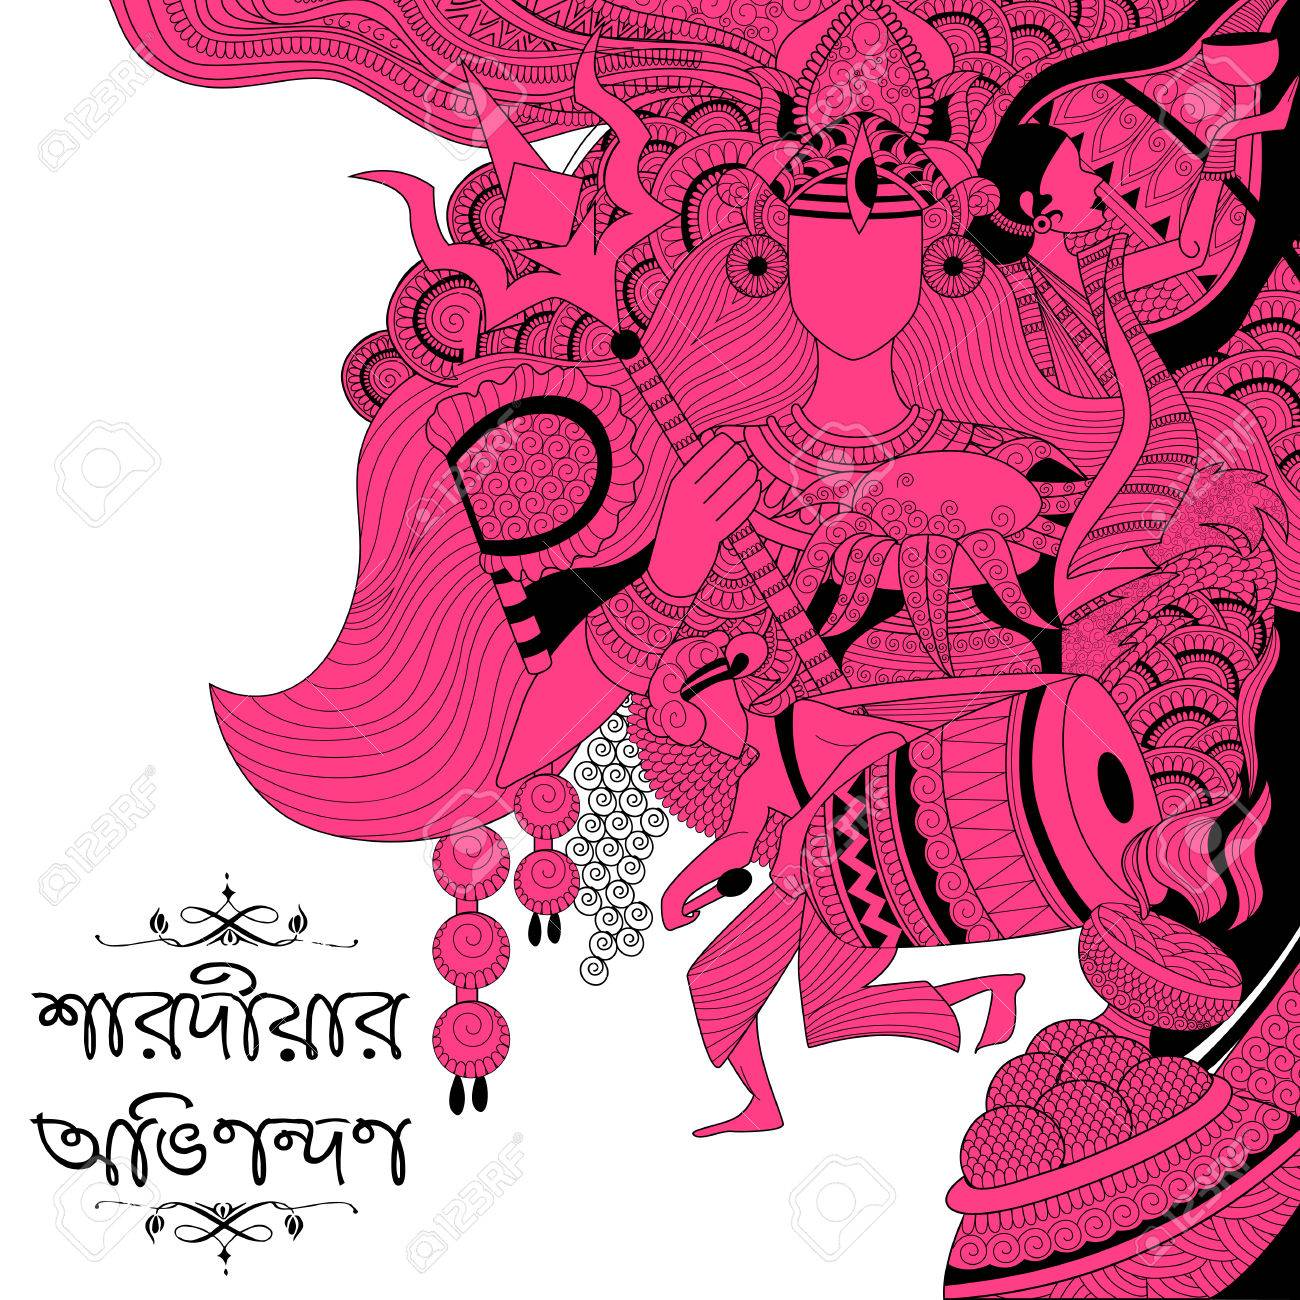 Illustration of happy durga puja background with bengali text illustration of happy durga puja background with bengali text meaning mother durga autumn greetings stock vector m4hsunfo